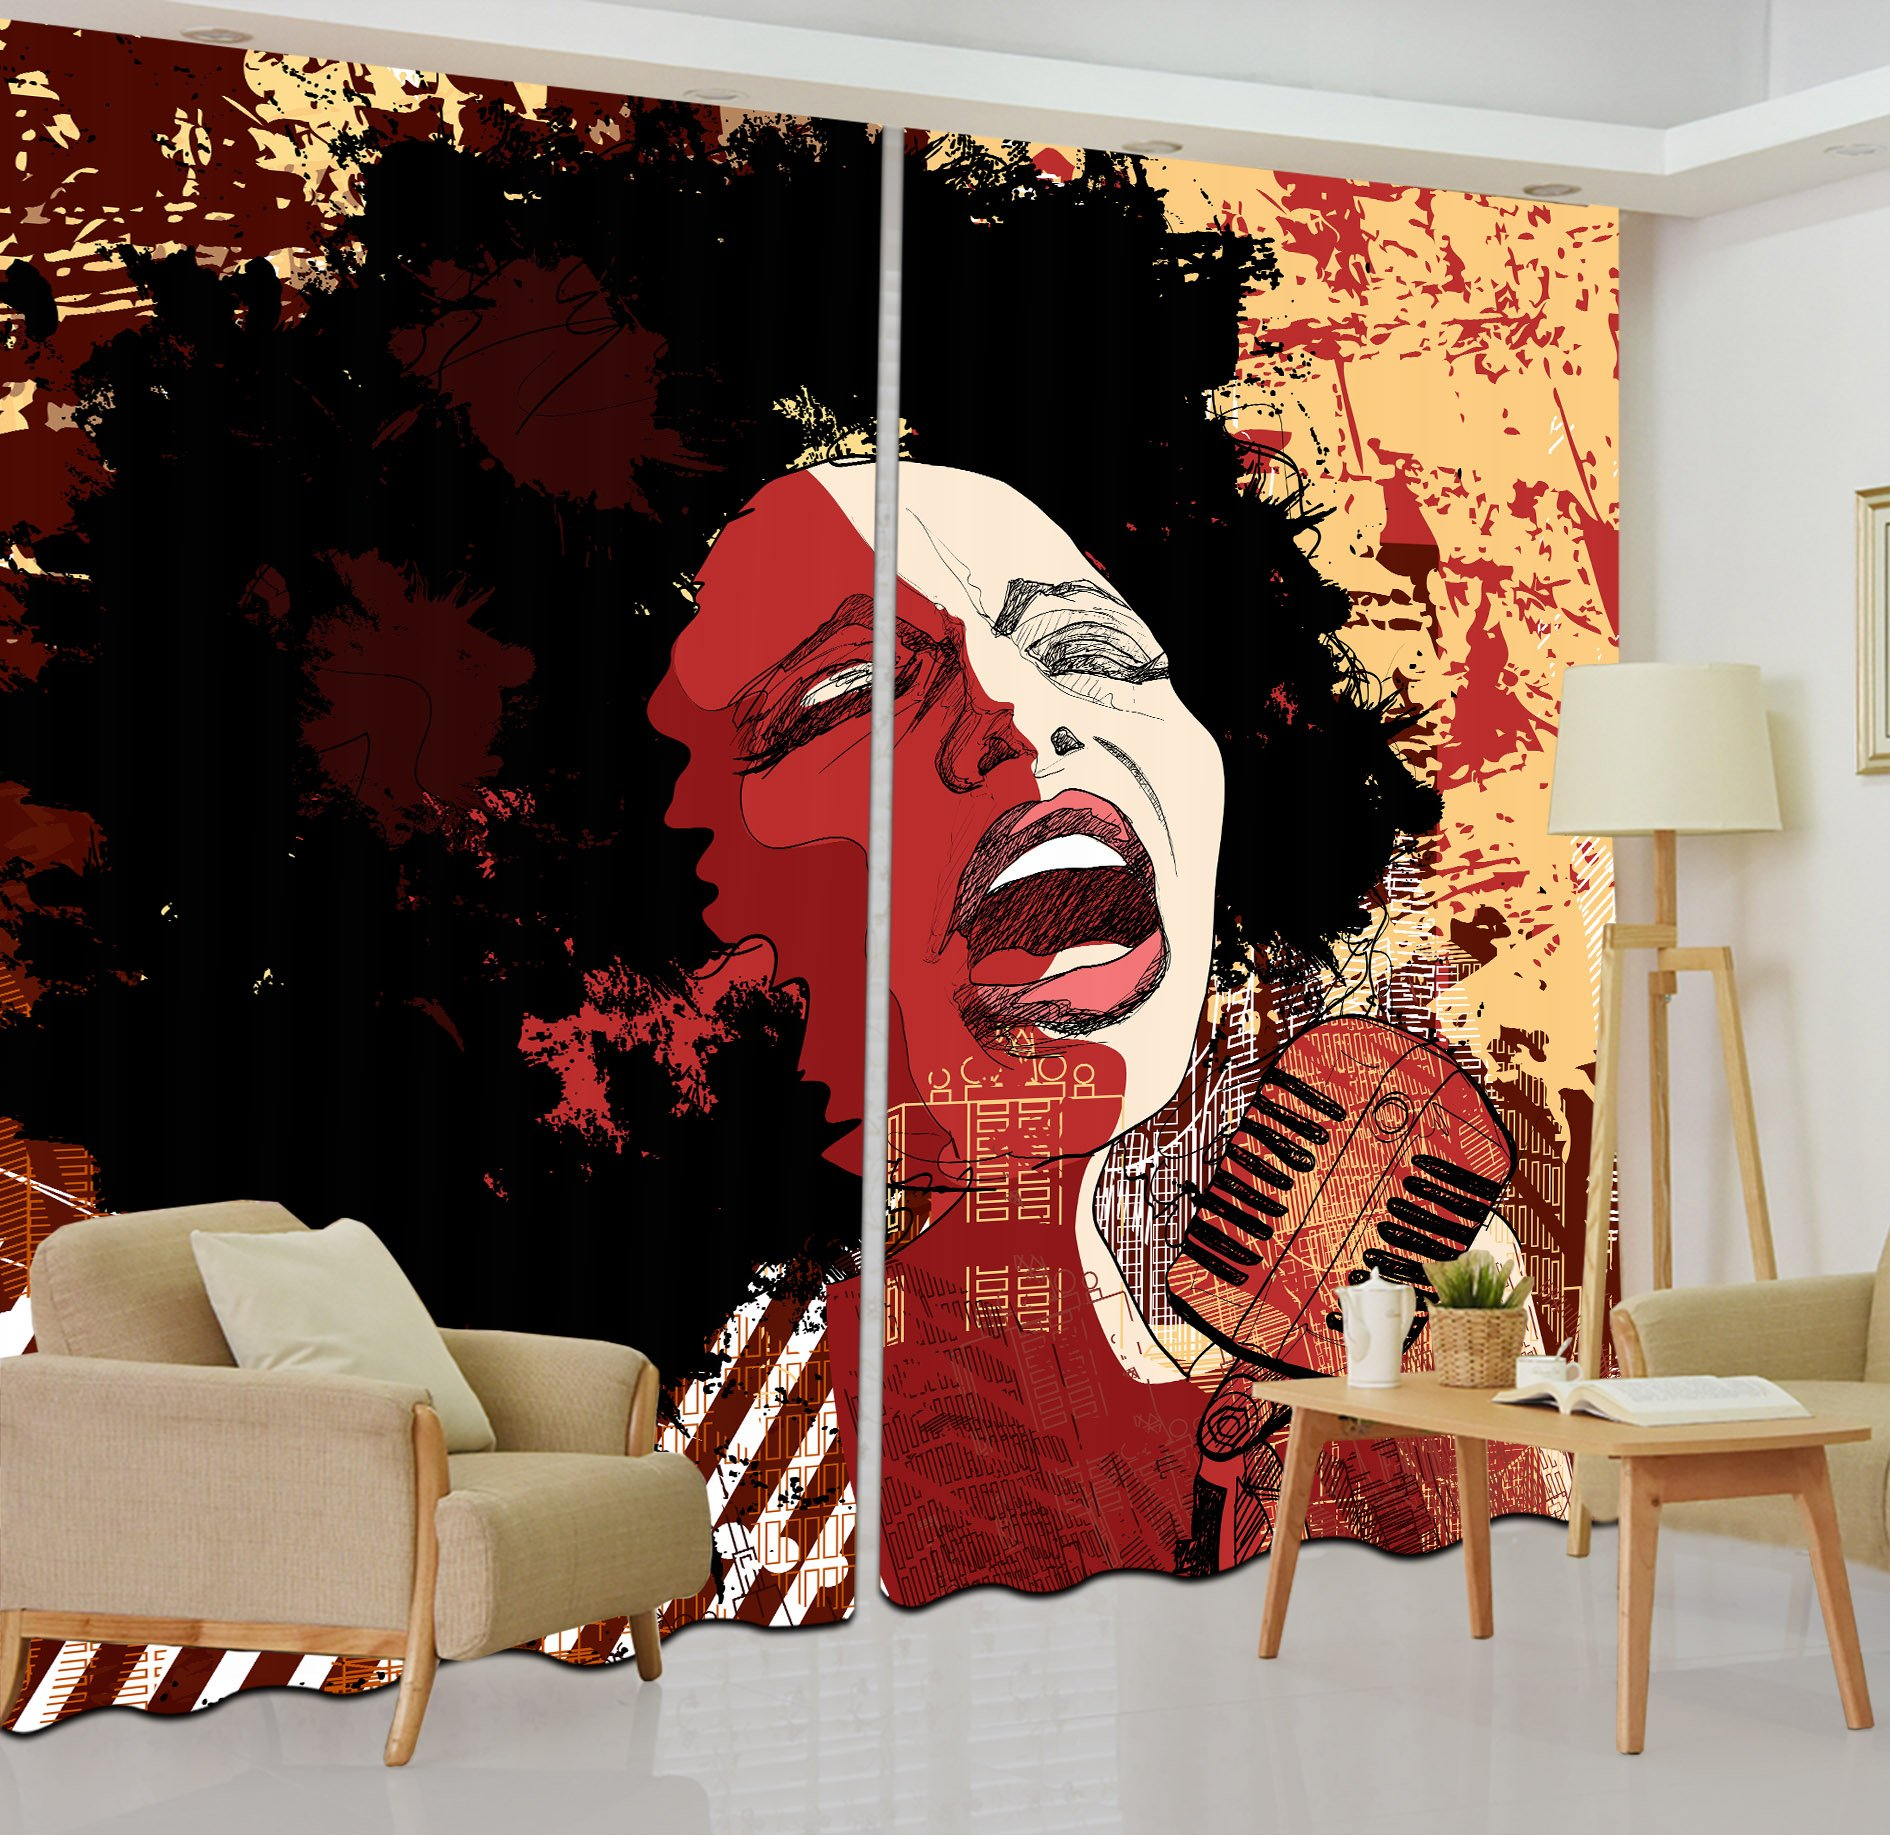 LB African Decor Curtains,2 Panels Room Darkening Blackout Curtains,Singing African Girls 3D Effect Print Window Treatment Living Room Bedroom Window Drapes,80 x 84 Inches